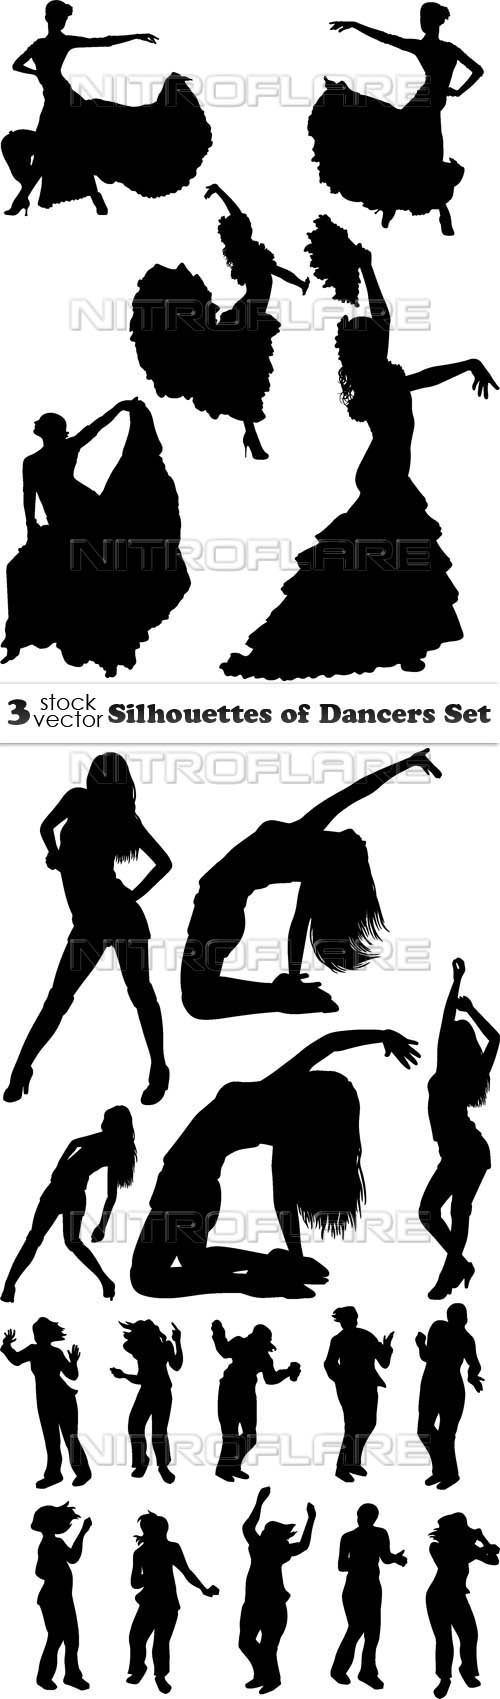 Vectors - Silhouettes of Dancers Set